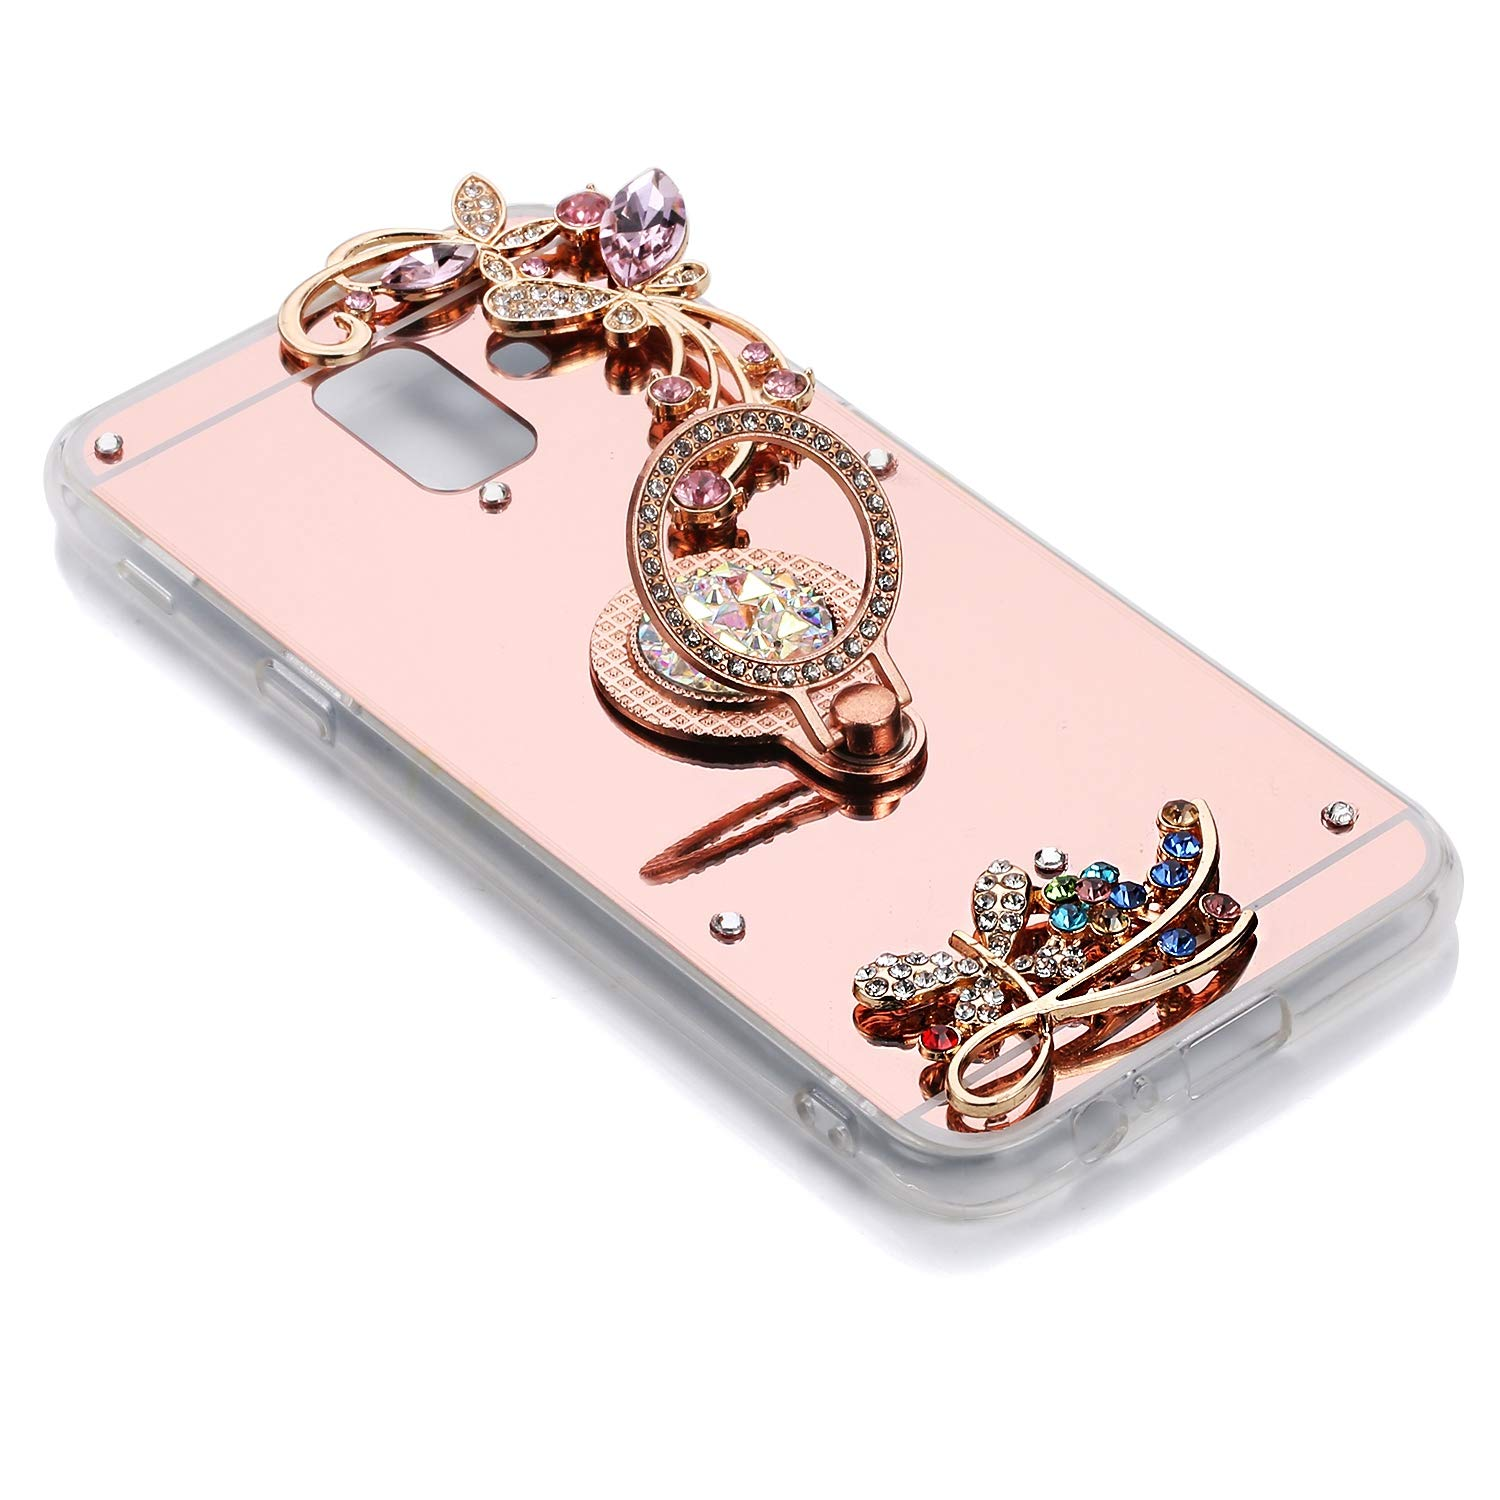 Herbests Cover Case Compatibile con Samsung Galaxy A6 2018 Mirror Custodia Silicone Diamante Glitter Bling Cover con Supporto Anello Custodia Flessibile Gomma Morbida Silicone Case,Oro Rosa